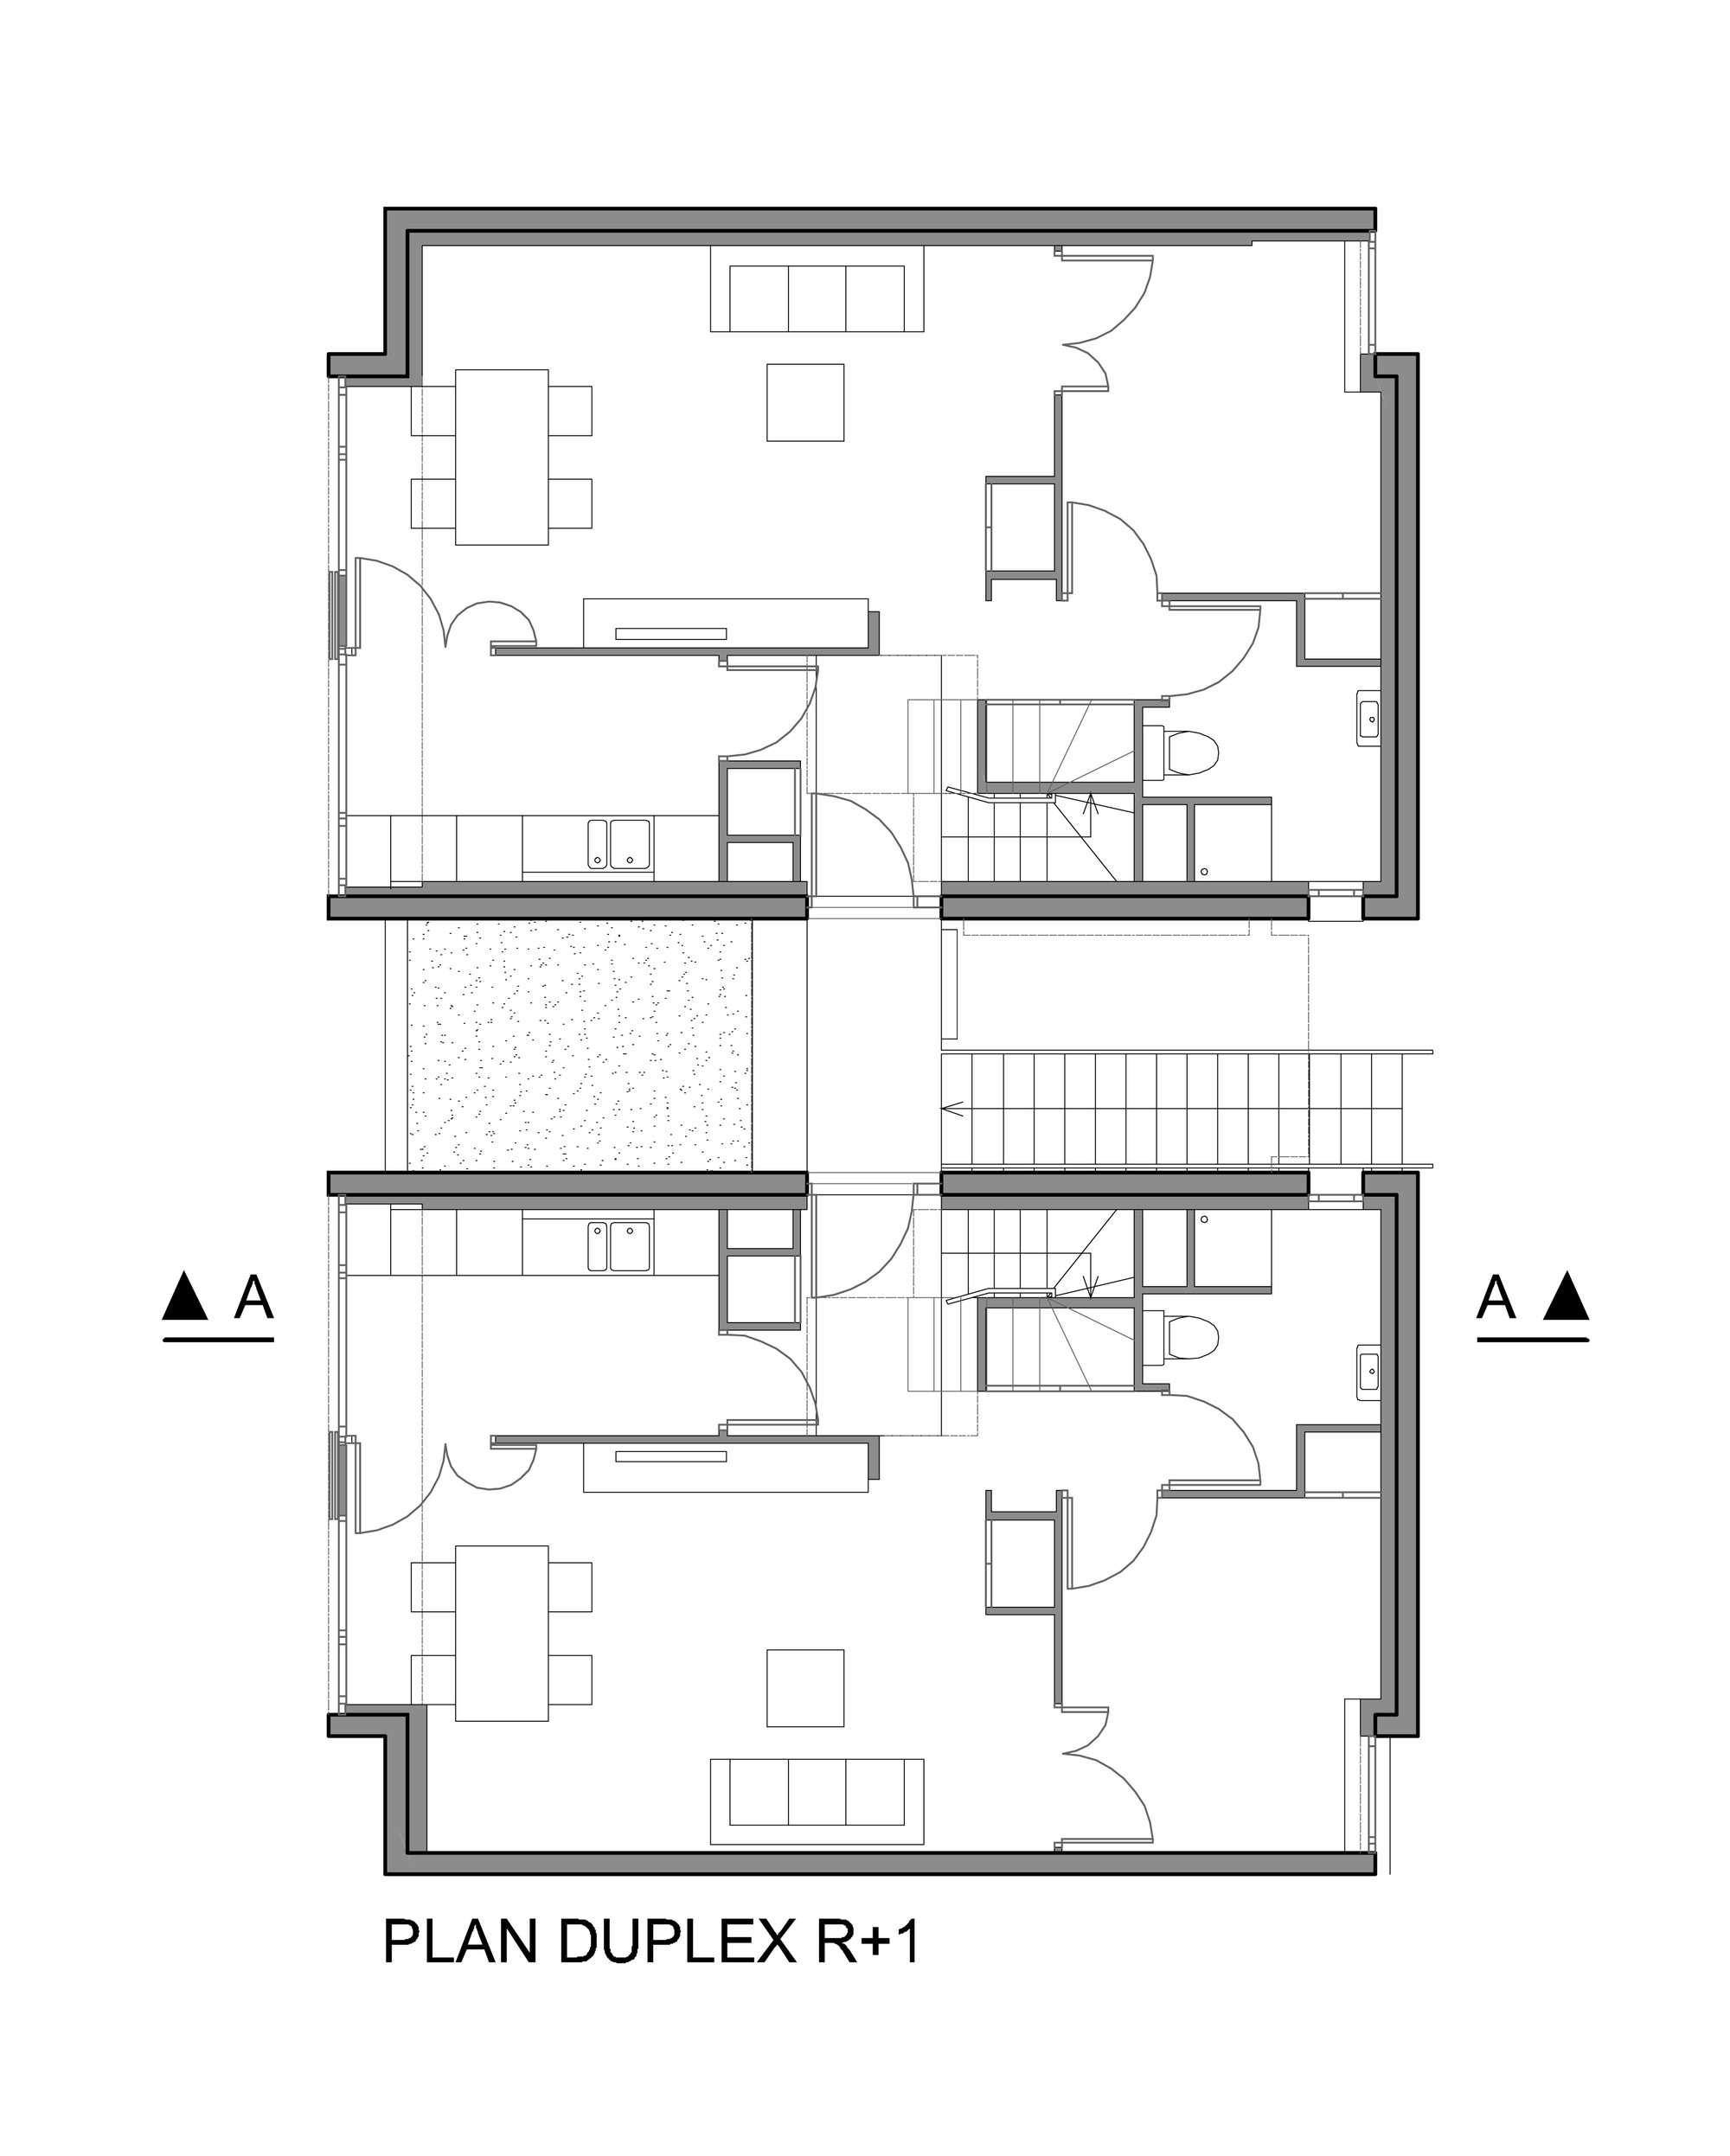 Duplex housing floor plans house design plans for House plans floor plans